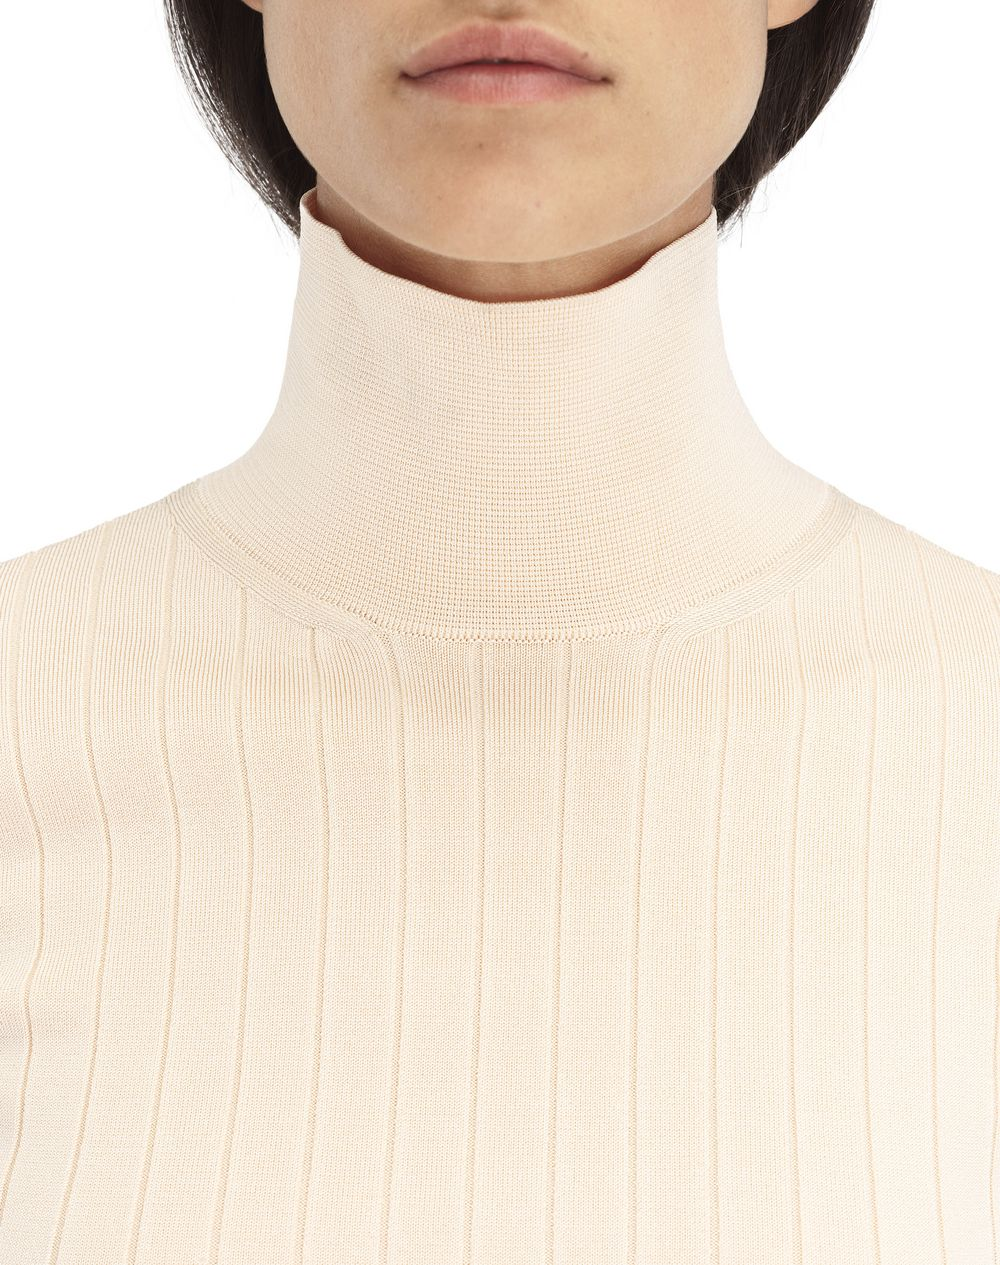 POWDER PINK TURTLENECK SWEATER - Lanvin